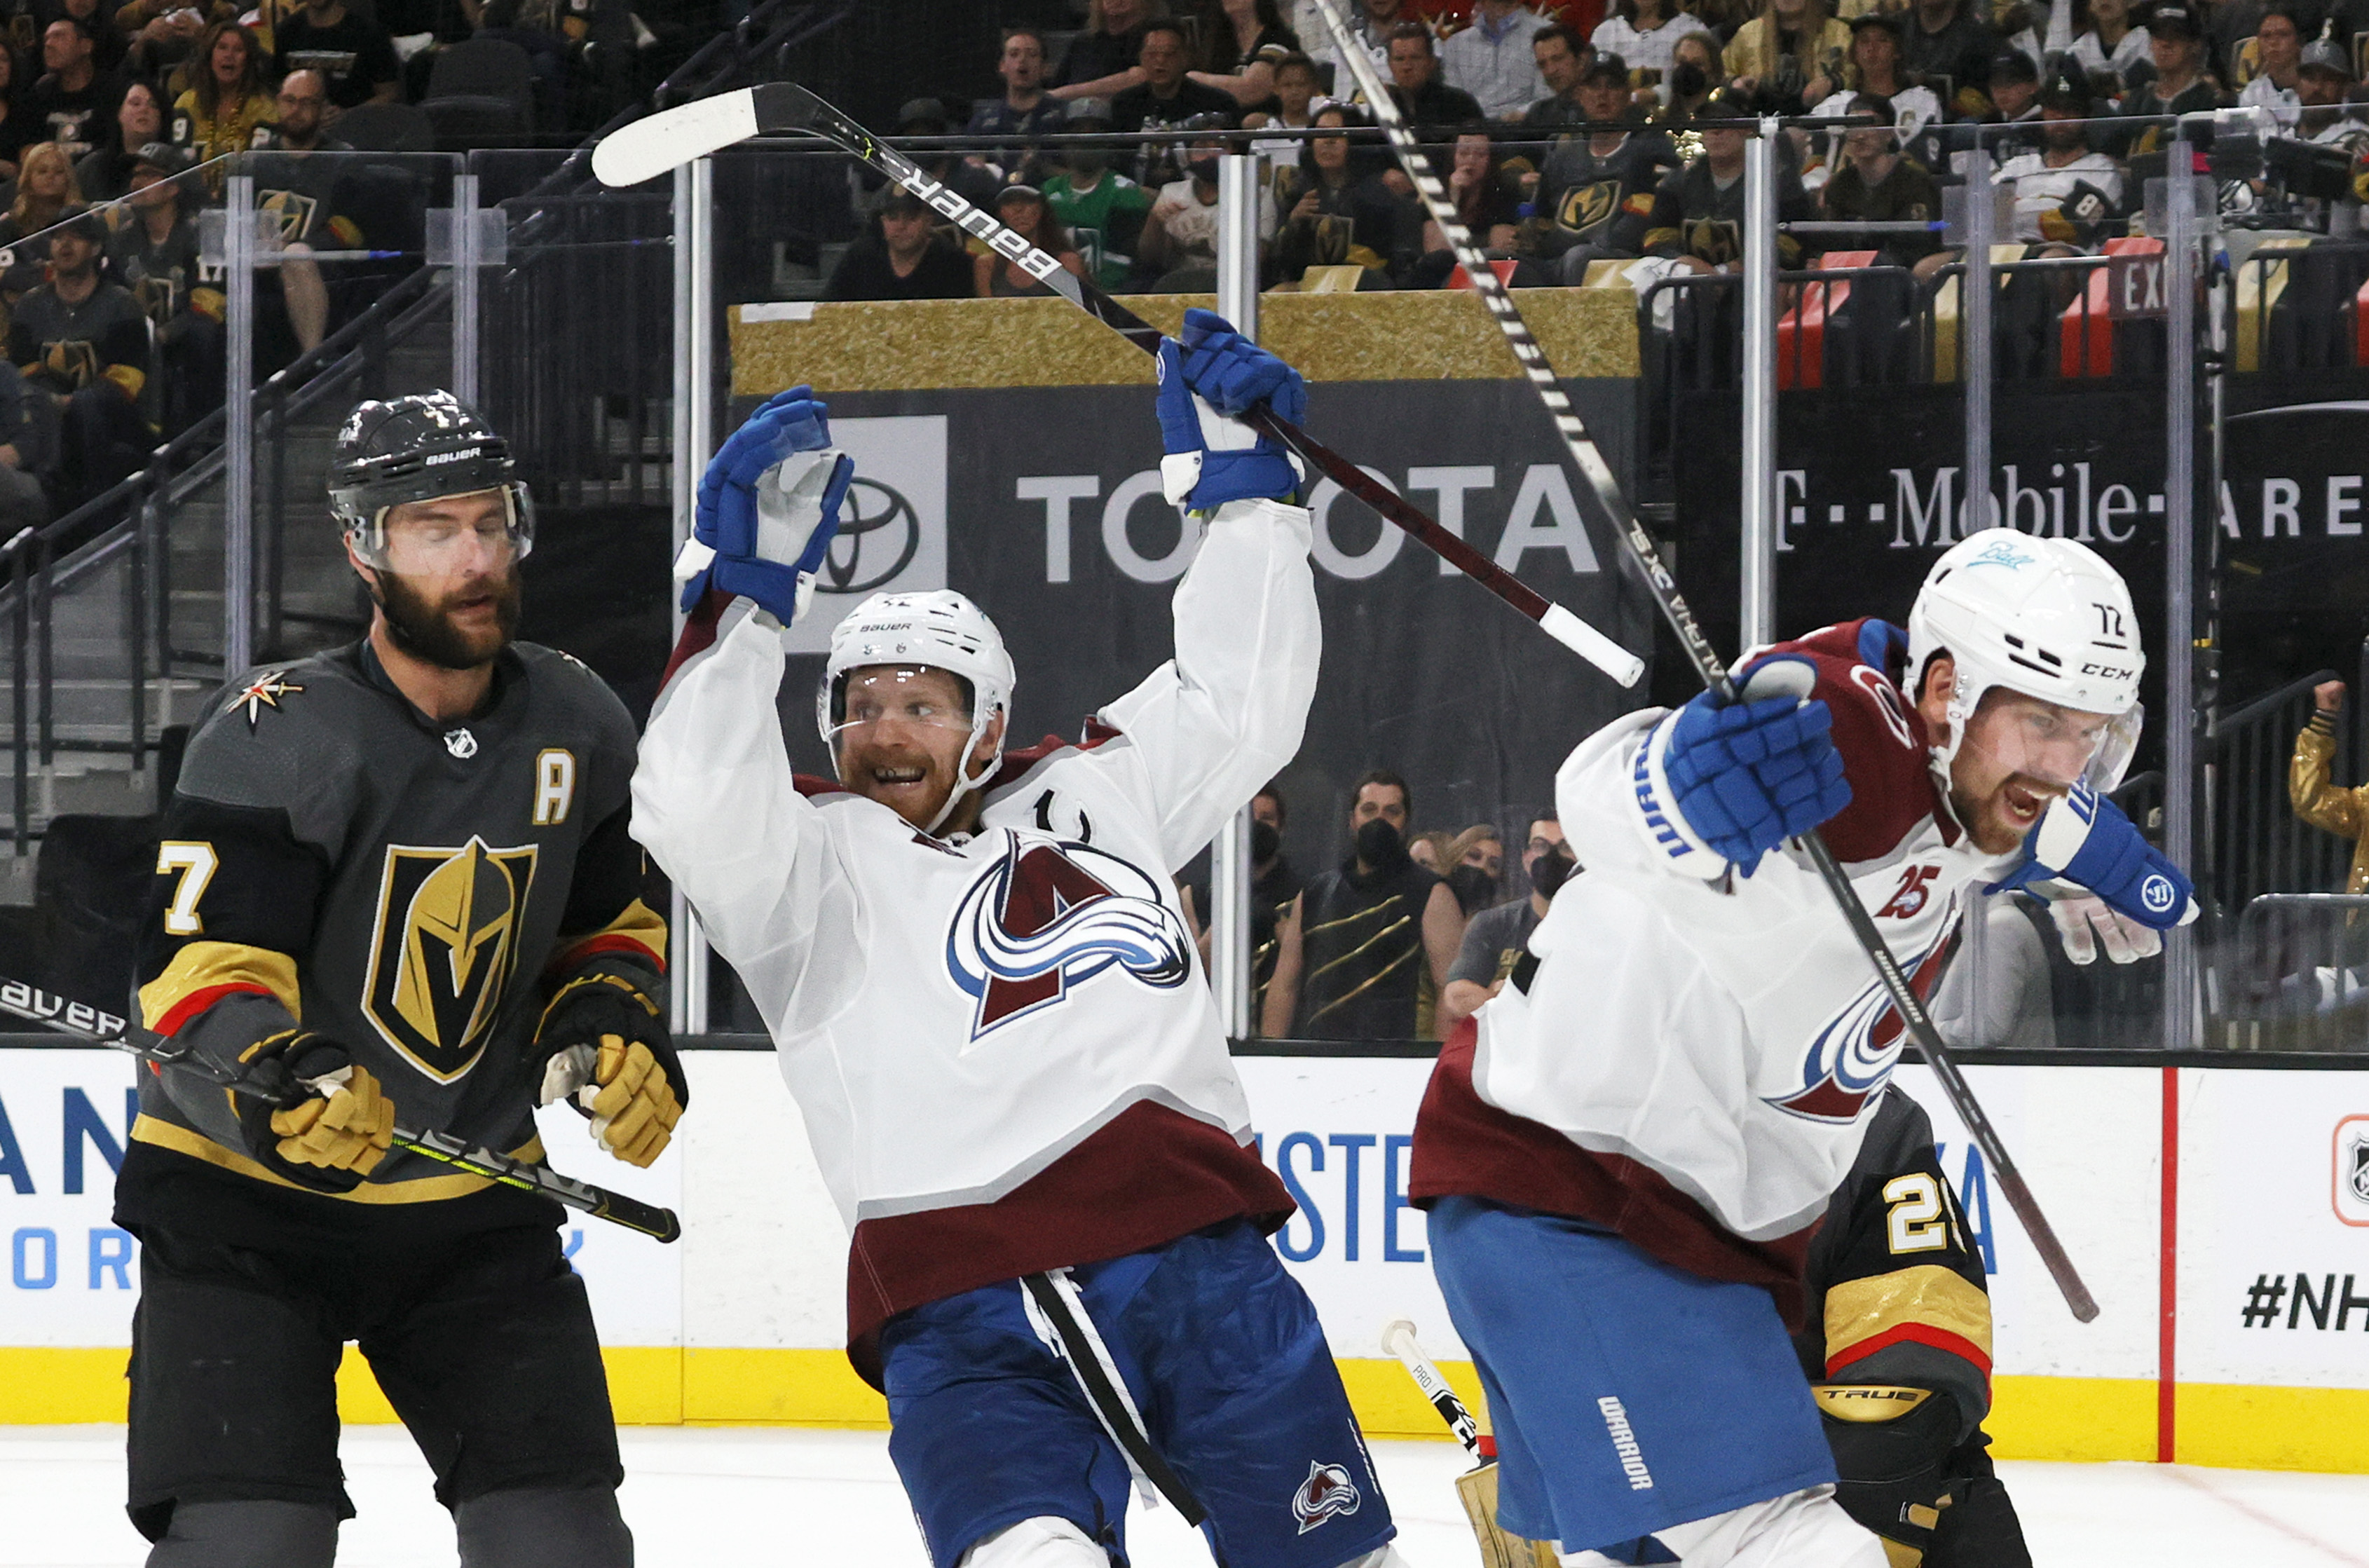 Alex Pietrangelo #7 of the Vegas Golden Knights and Gabriel Landeskog #92 and Joonas Donskoi #72 of the Colorado Avalanche react after Mikko Rantanen #96 of the Avalanche scored a third-period power-play goal against the Golden Knights in Game Three of the Second Round of the 2021 Stanley Cup Playoffs at T-Mobile Arena on June 4, 2021 in Las Vegas, Nevada. The Golden Knights defeated the Avalanche 3-2.